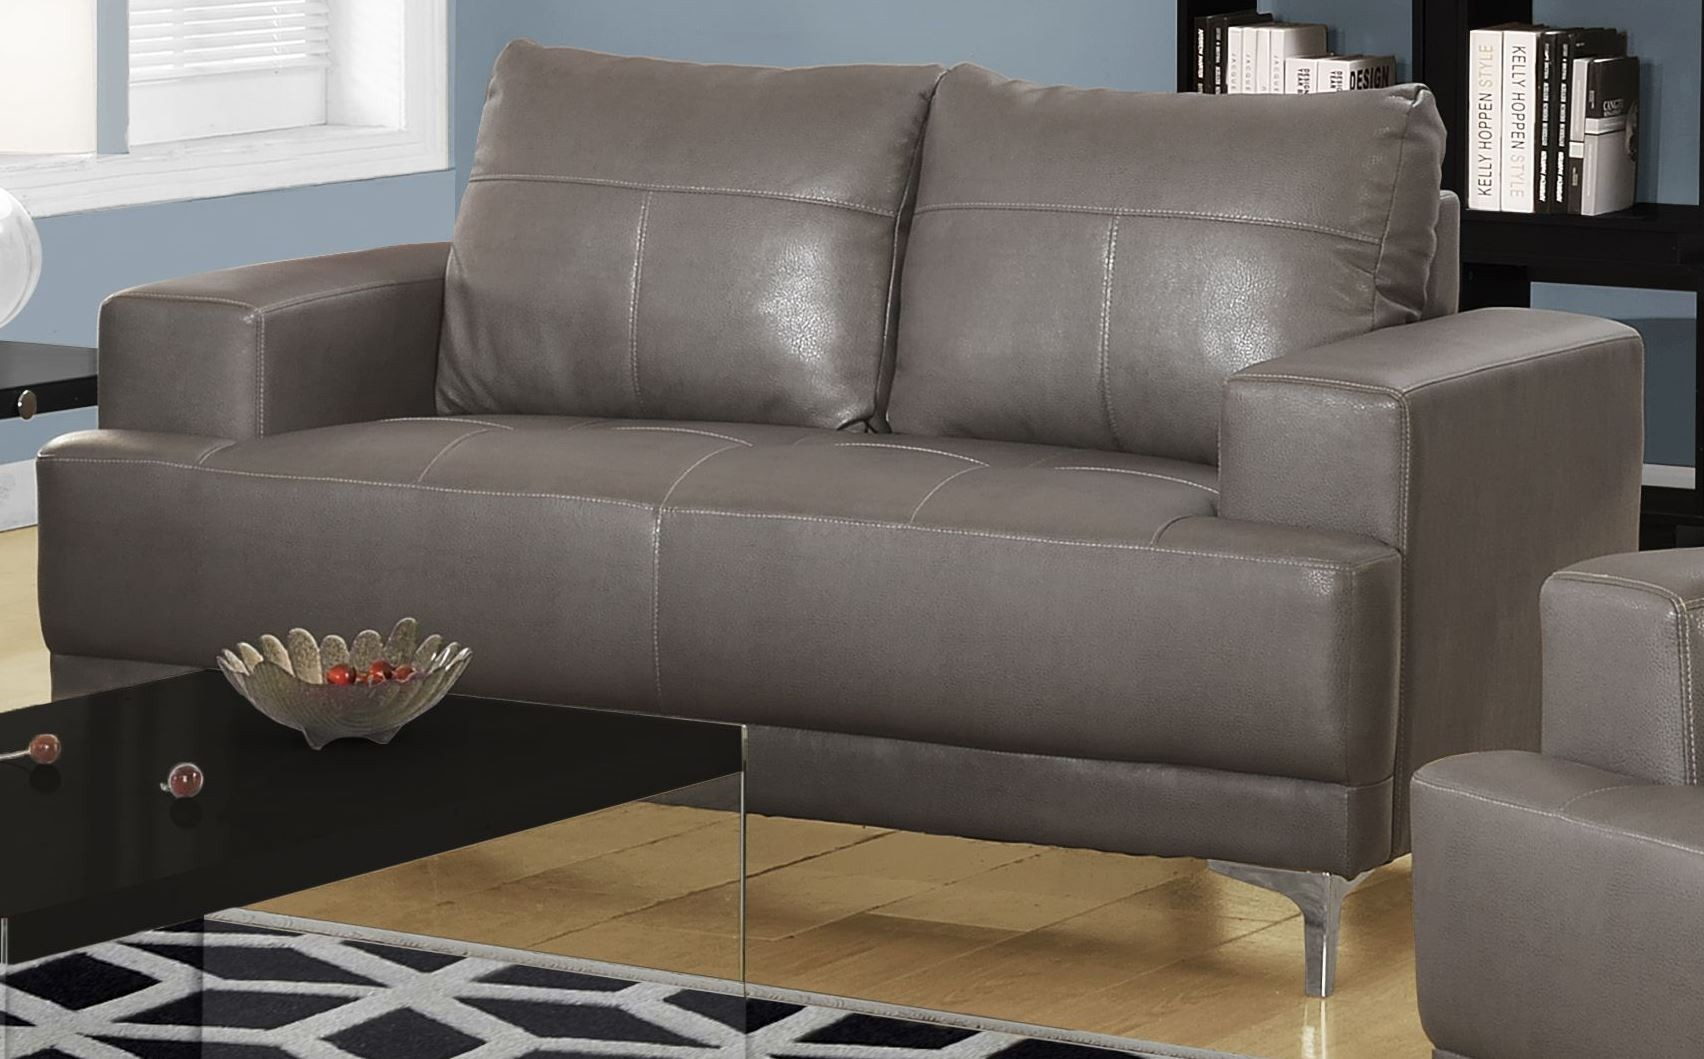 charcoal grey leather sofa best transitional sofas 8603gy gray bonded living room set